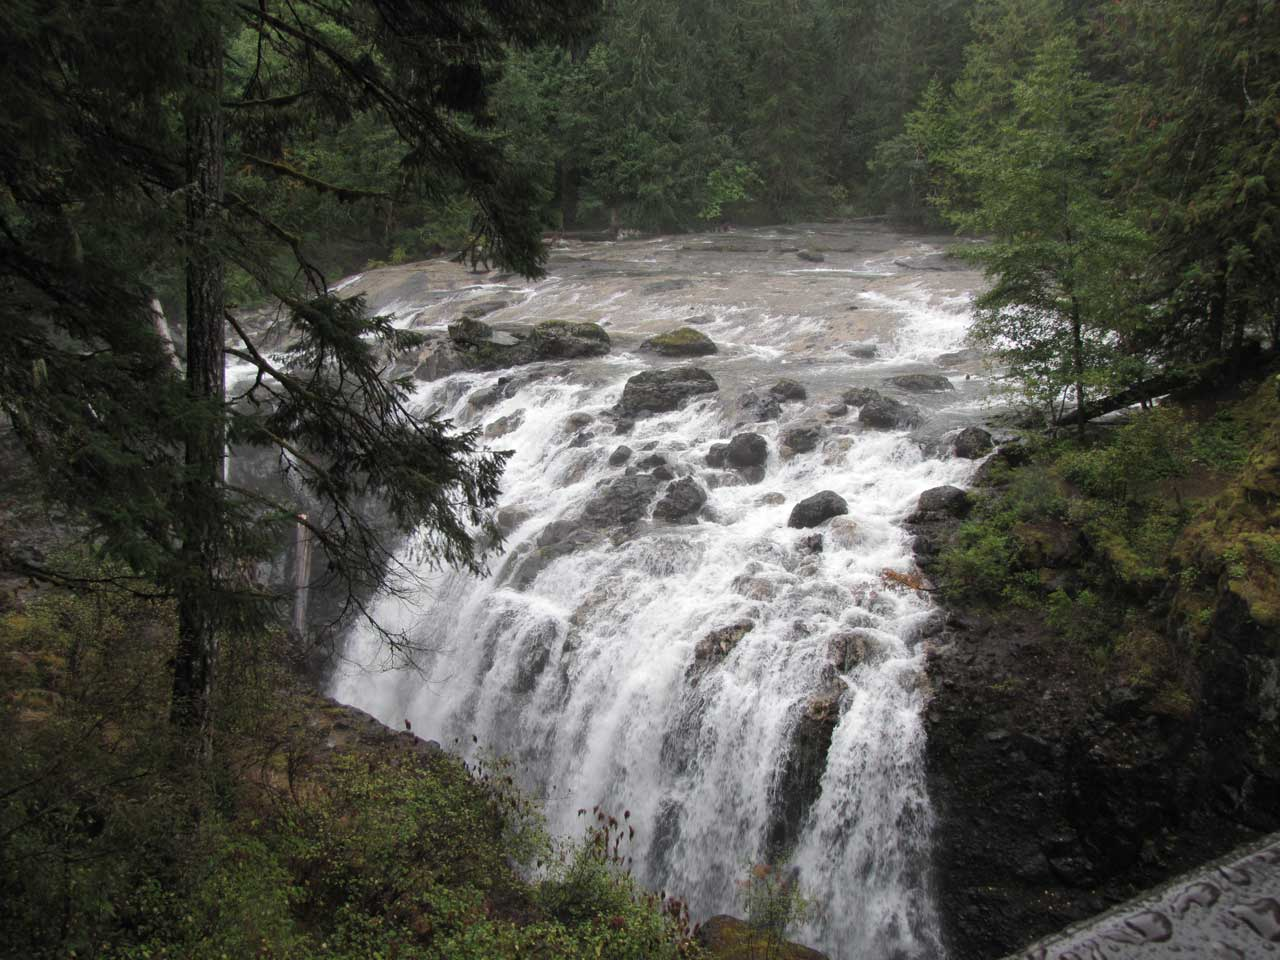 Massive rocky waterfall surrounded by forest British Columbia